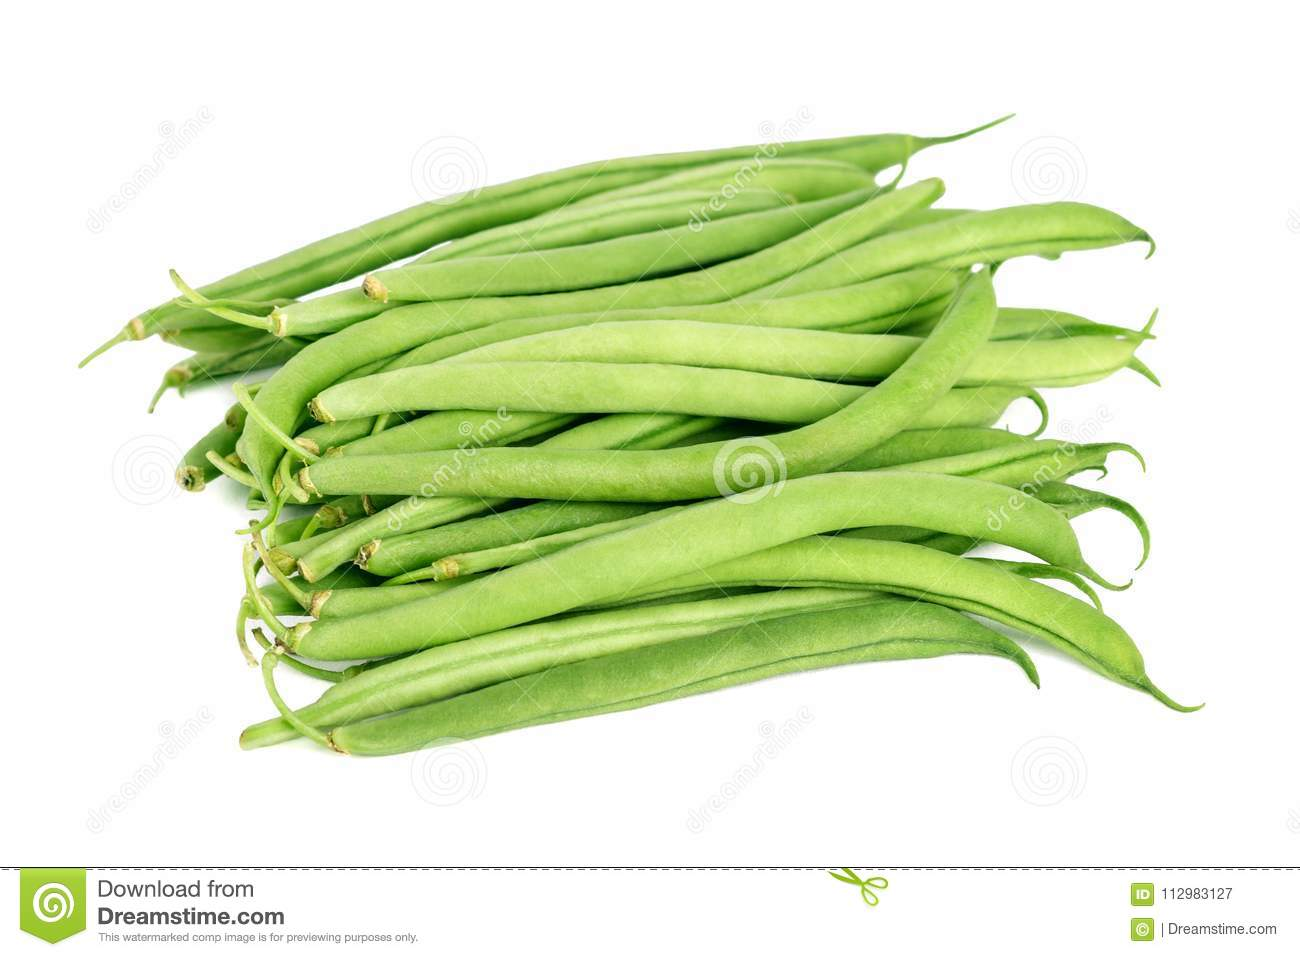 Bundle of fresh green beans isolated on white